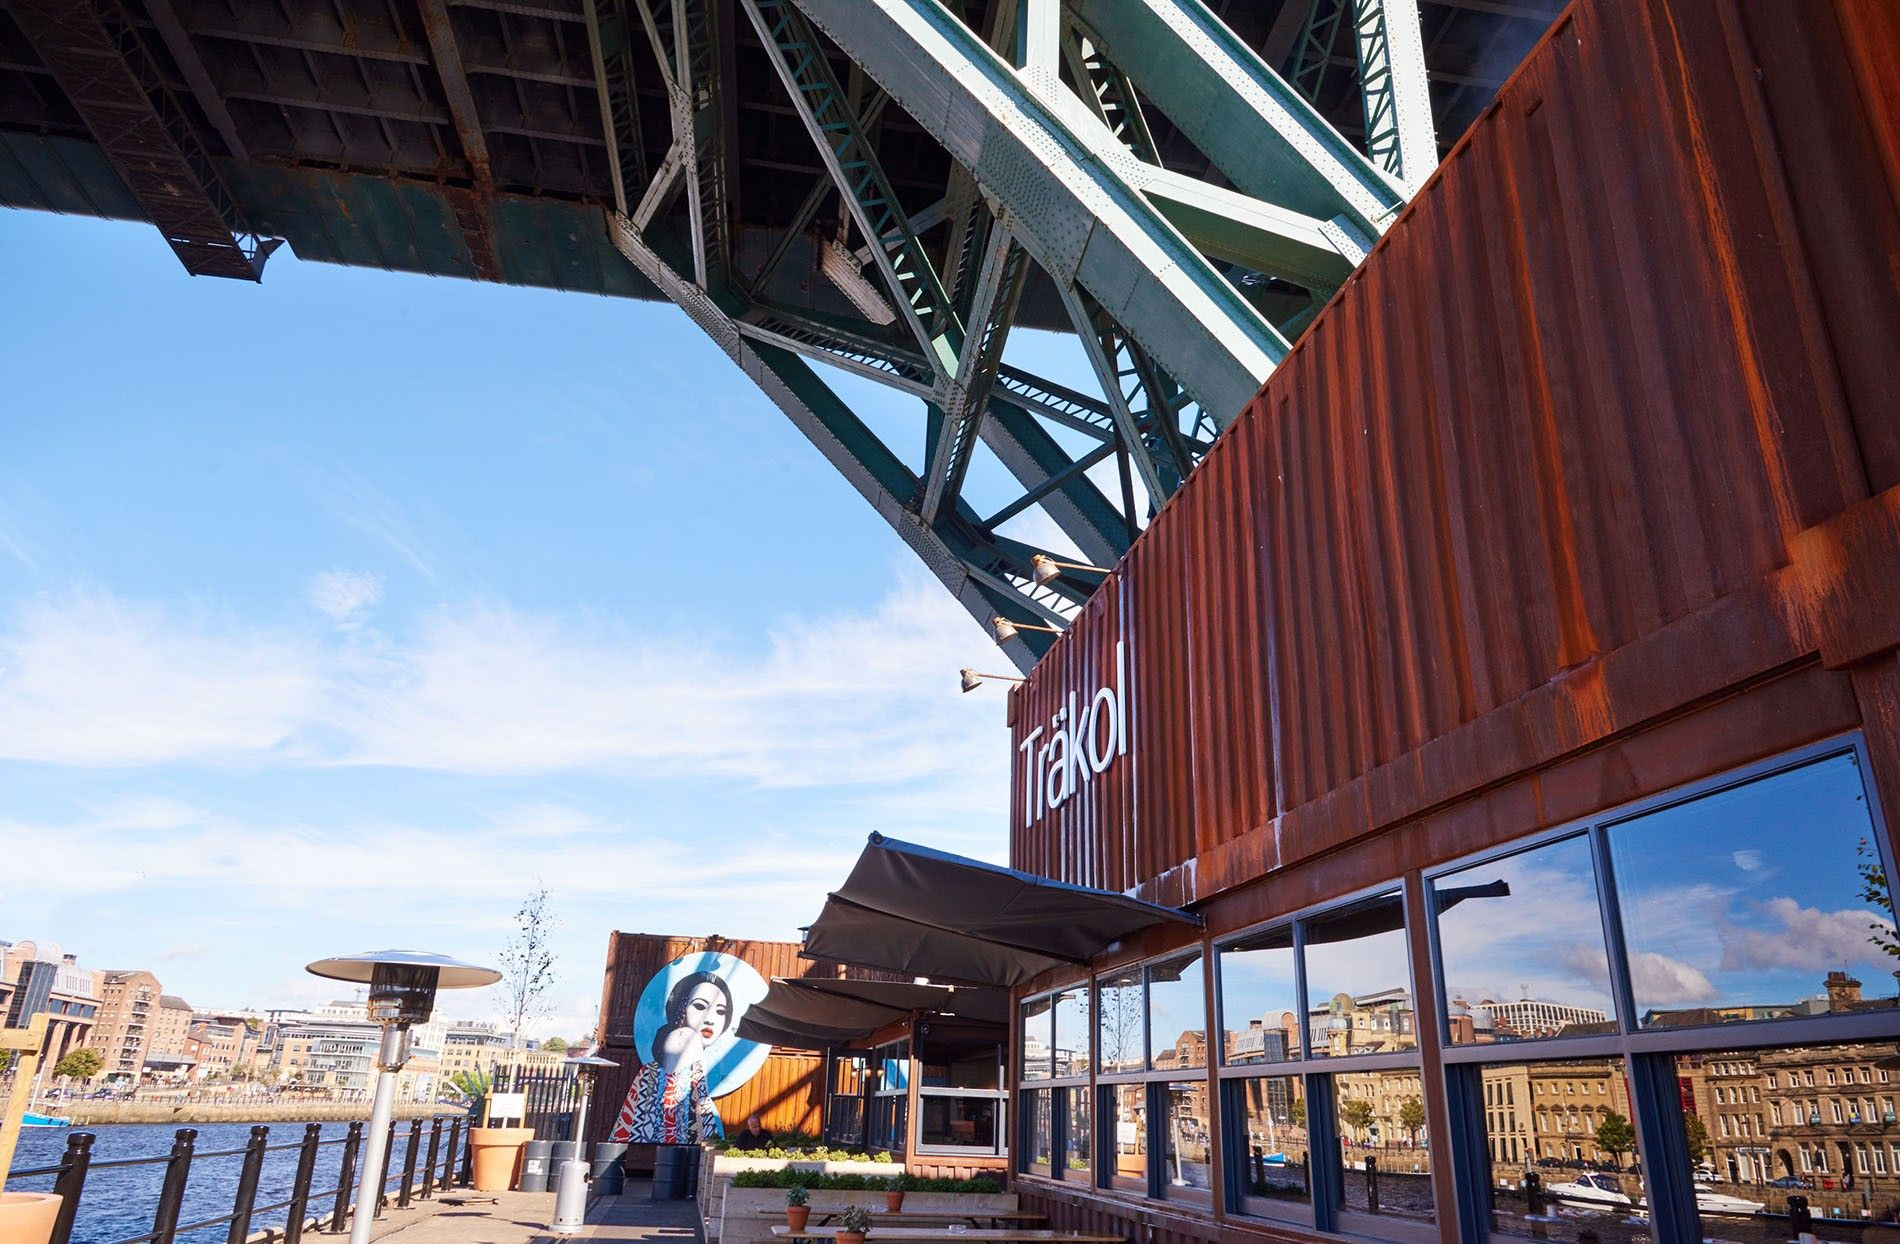 Housed in shipping containers overlooking the River Tyne, Träkol is a new hipster favourite.